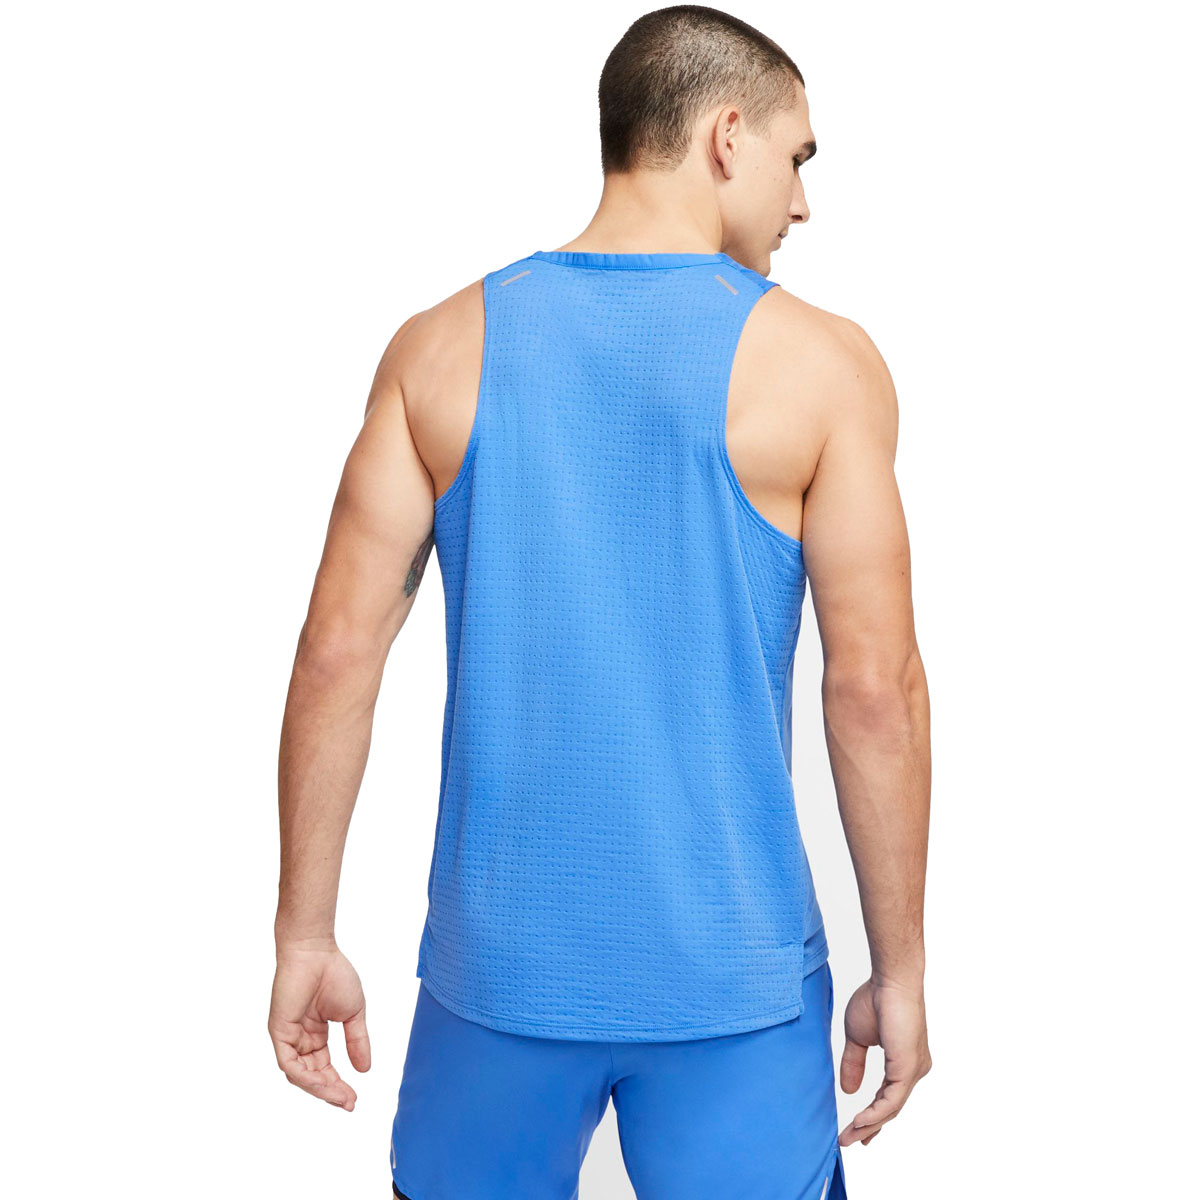 Men's Nike Rise 365 Running Tank - Color: Pacific Blue/Reflective Silver - Size: S, Pacific Blue/Reflective Silver, large, image 2